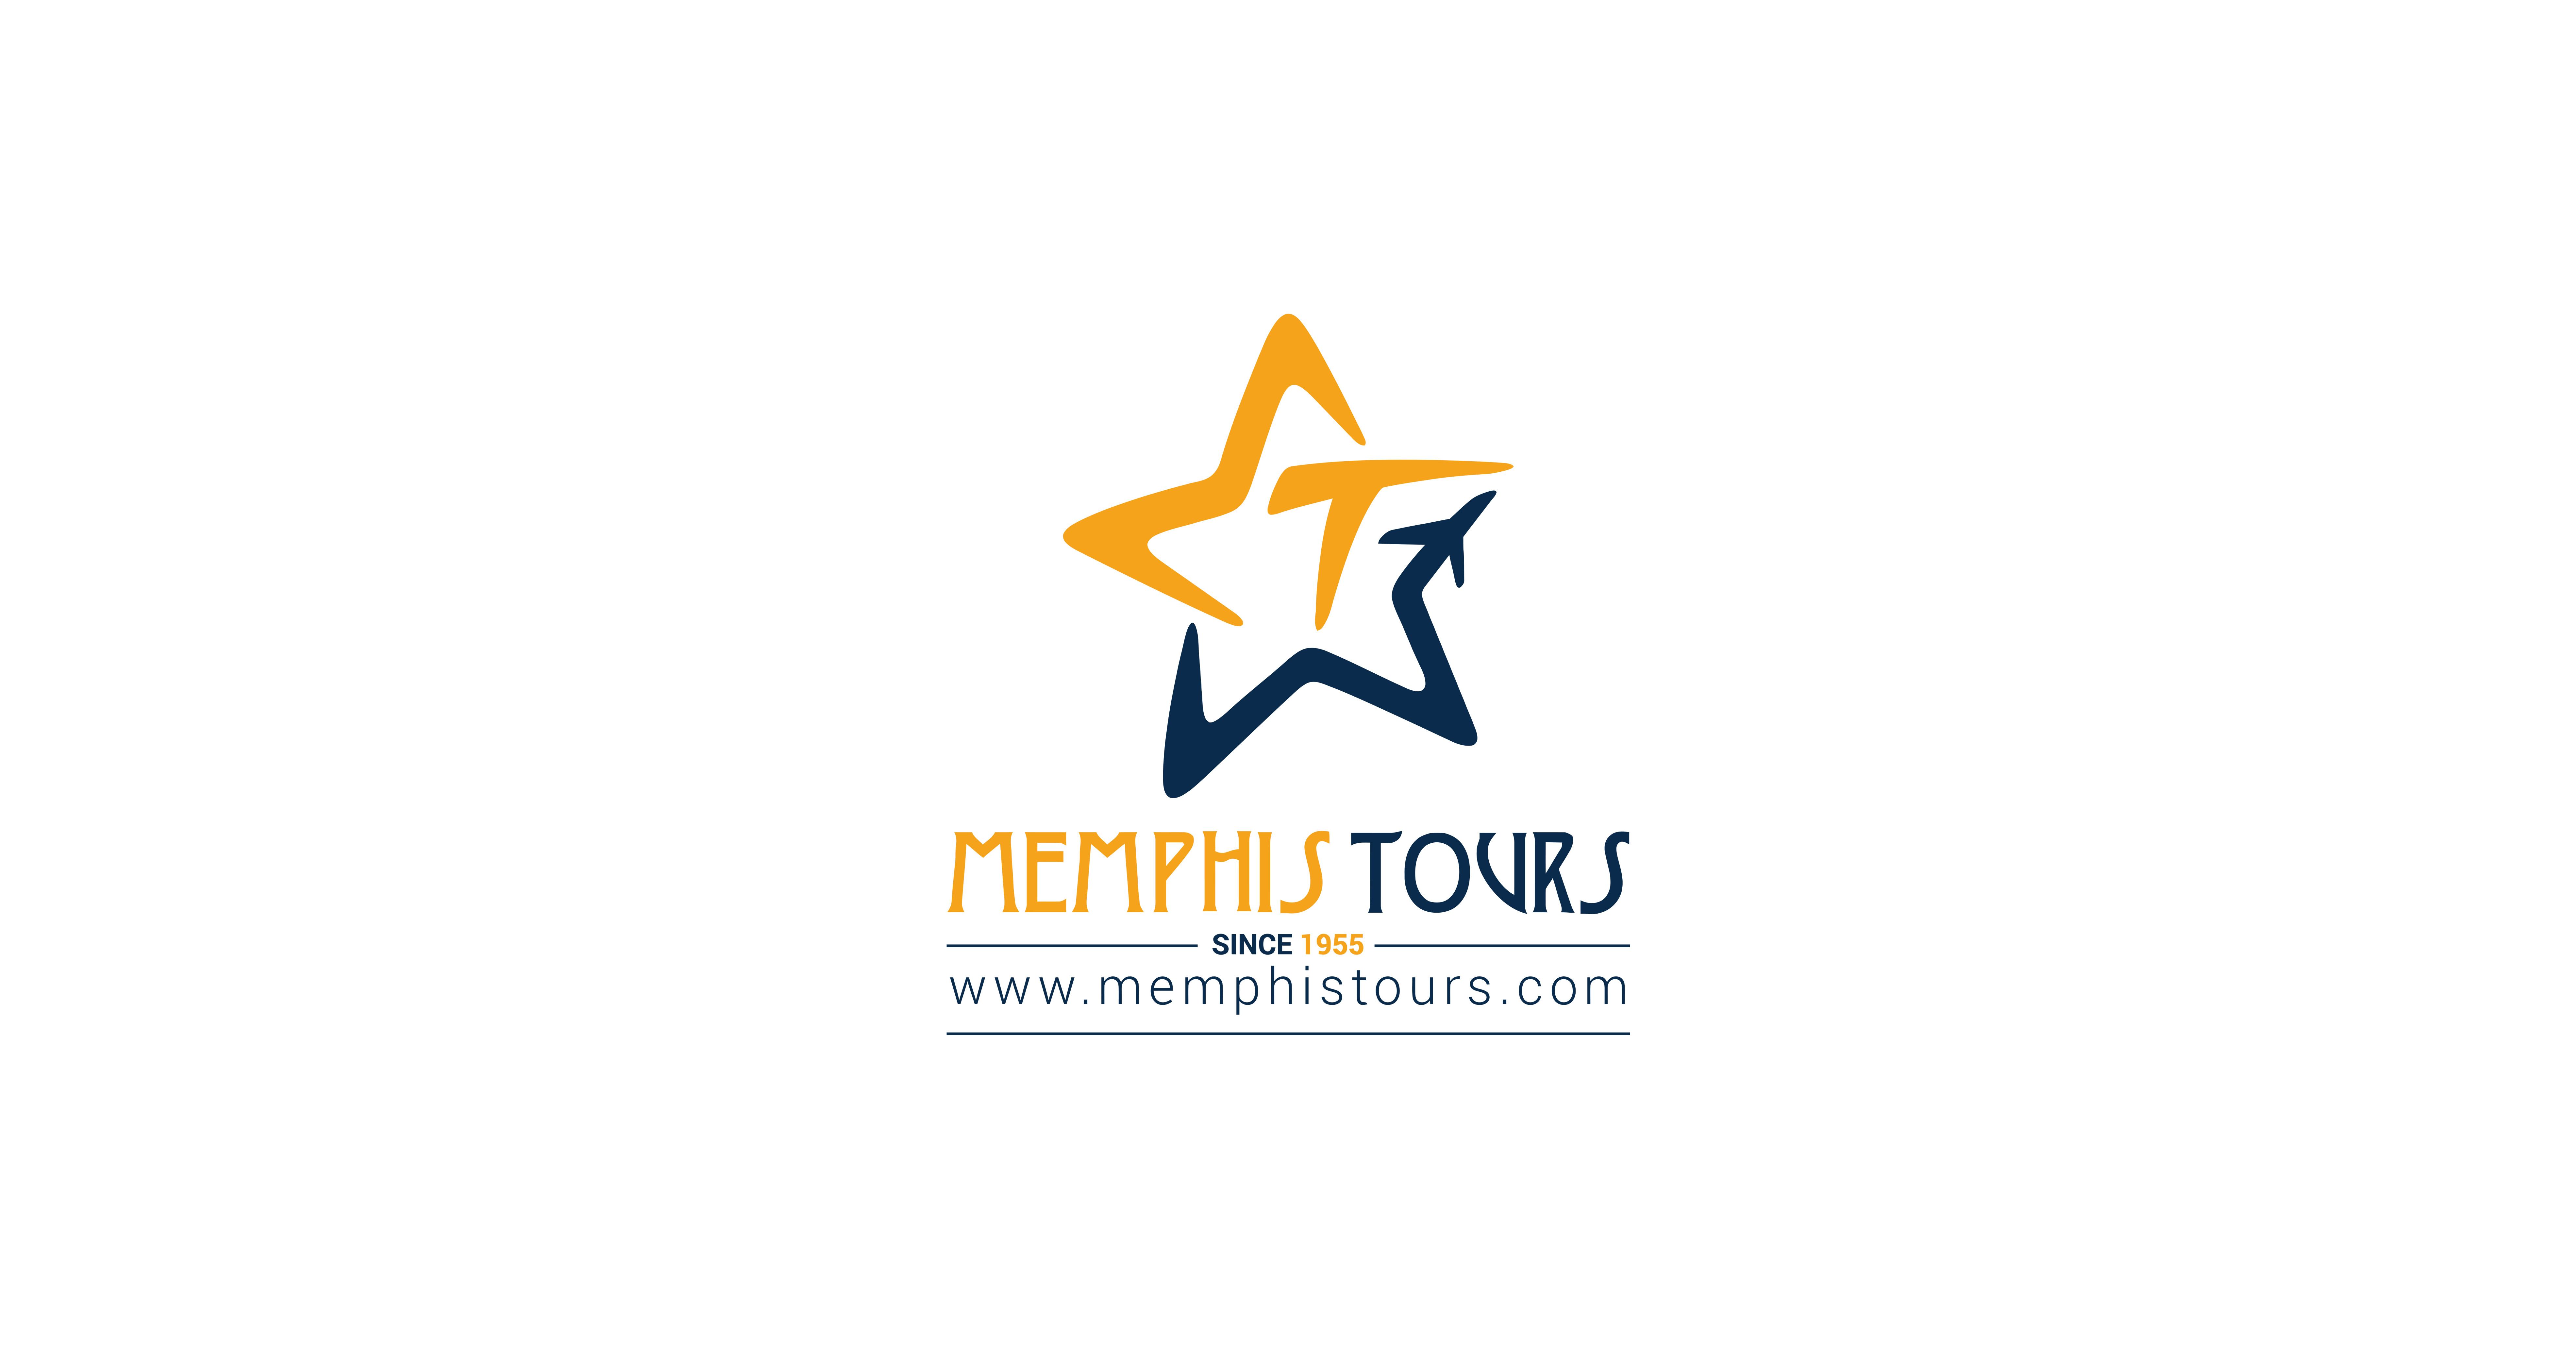 Astonishing Jobs And Careers At Memphis Tours Egypt Wuzzuf Home Interior And Landscaping Ologienasavecom